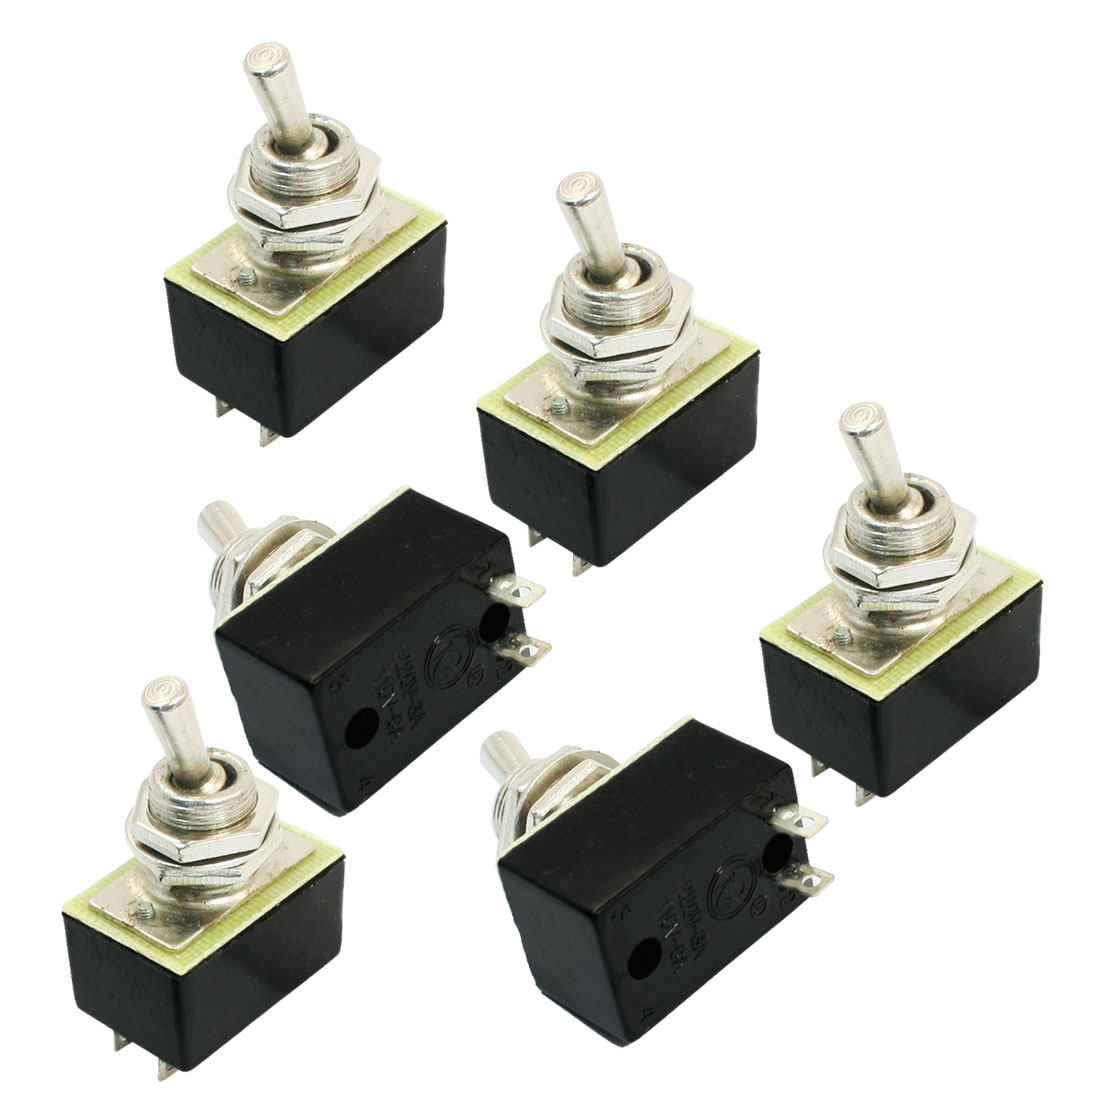 SPST ON/OFF 2 Position Power Control Toggle Switch AC 110V 6A KN3A 1X1 6pcs